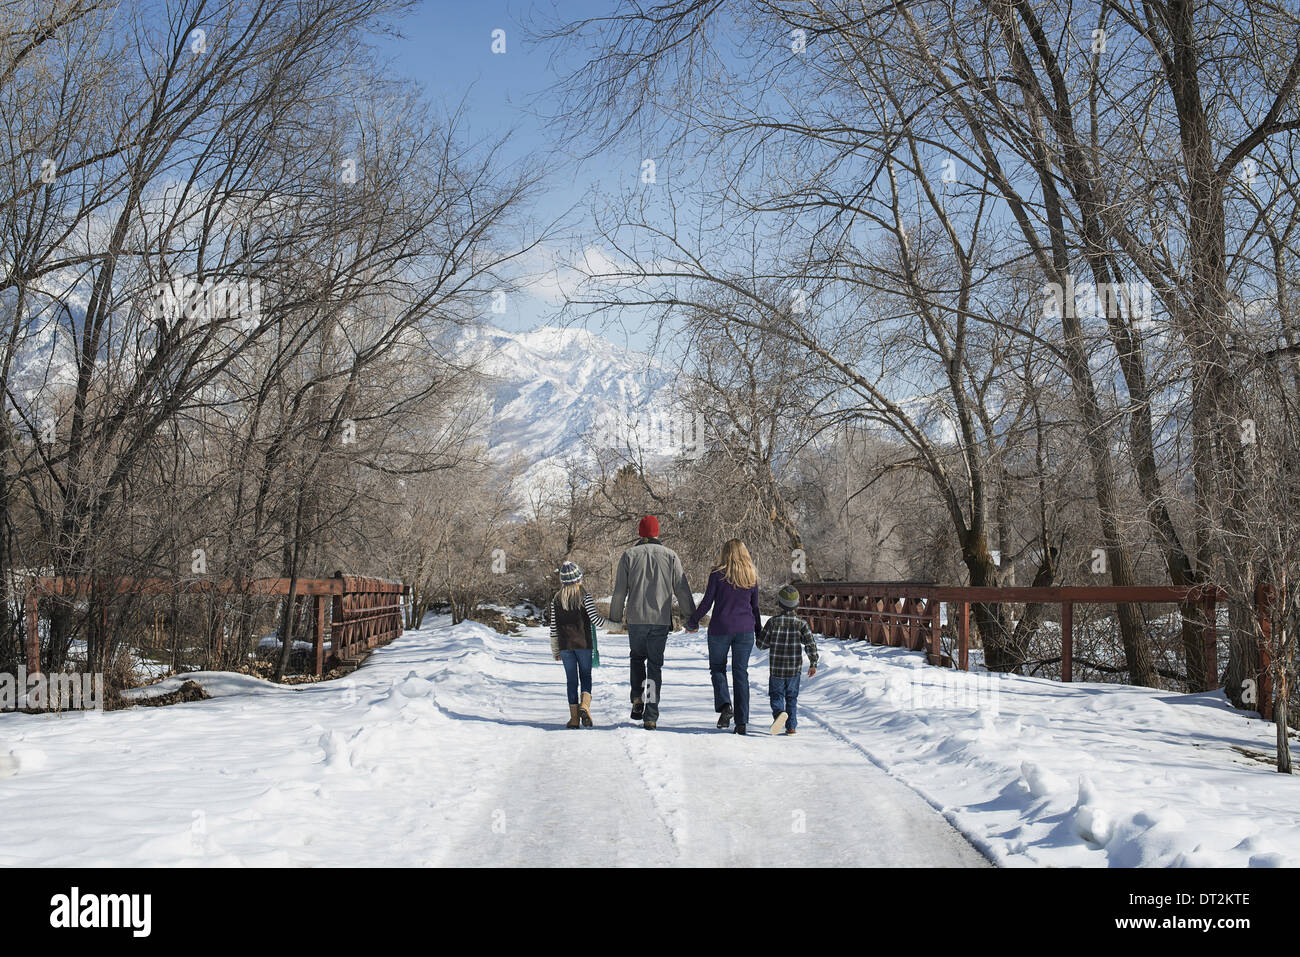 Winter scenery with snow on the ground A family adults and two children walking down an empty road - Stock Image